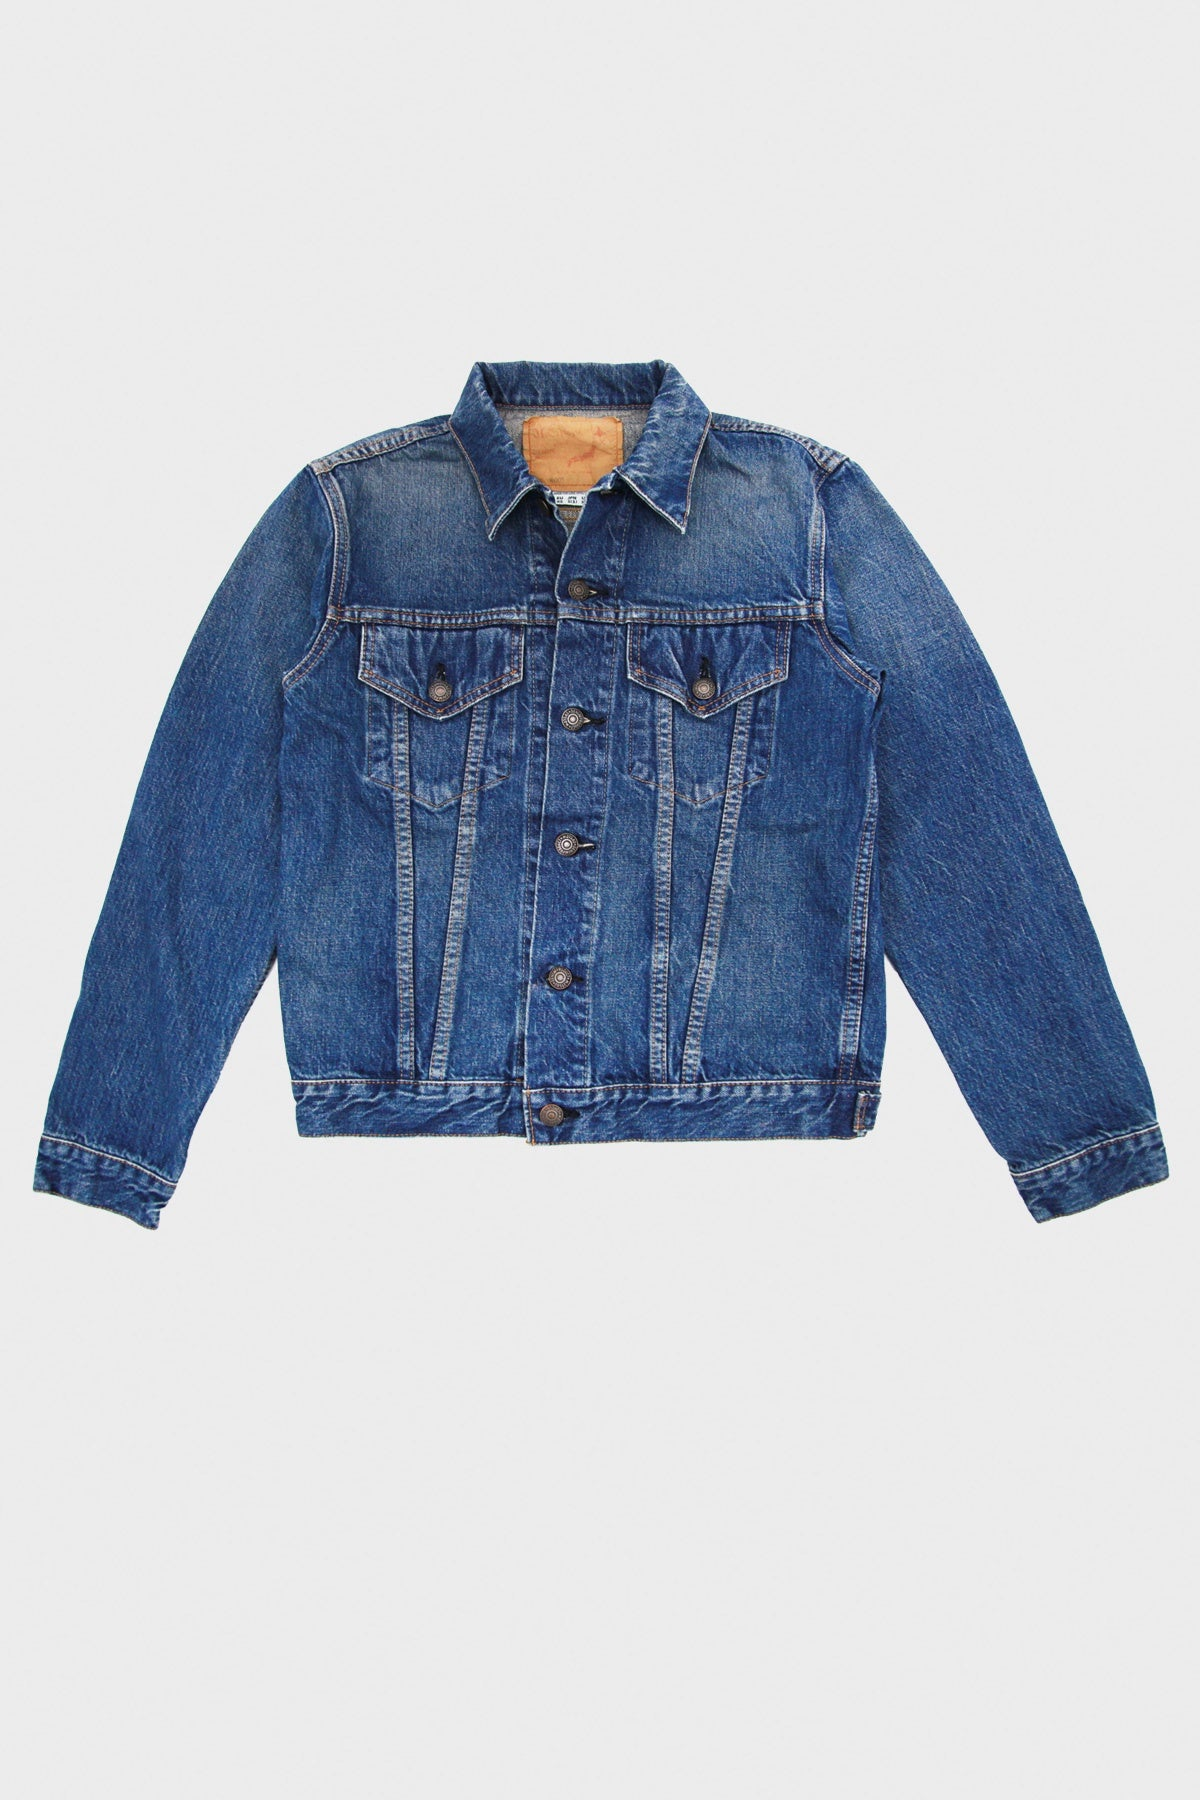 orSlow - 60s Denim Jacket - 2 Year Wash - Canoe Club